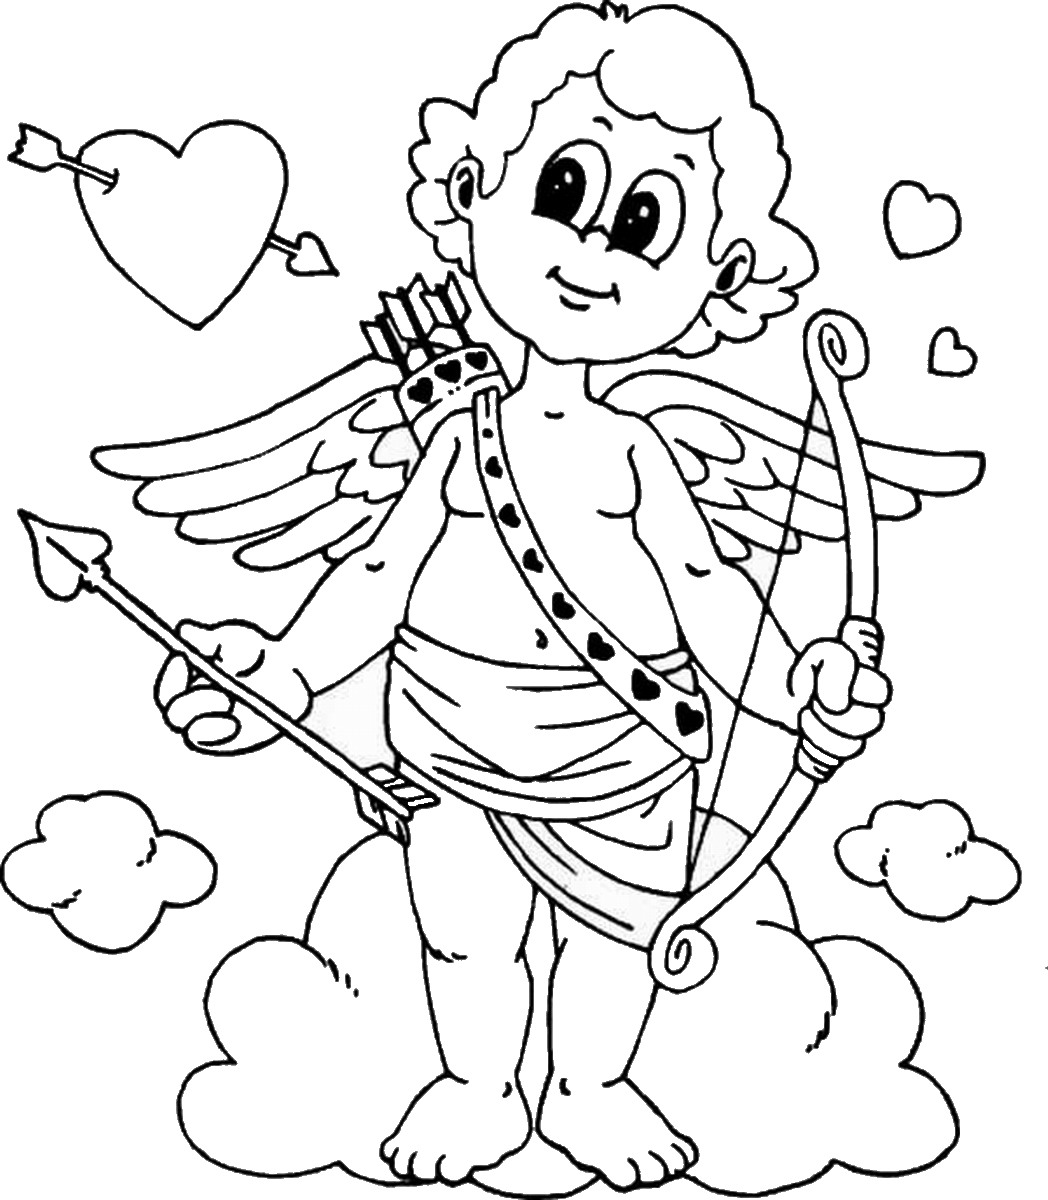 valentines day color pages printable valentine39s day coloring page 2 coolest free color pages day valentines